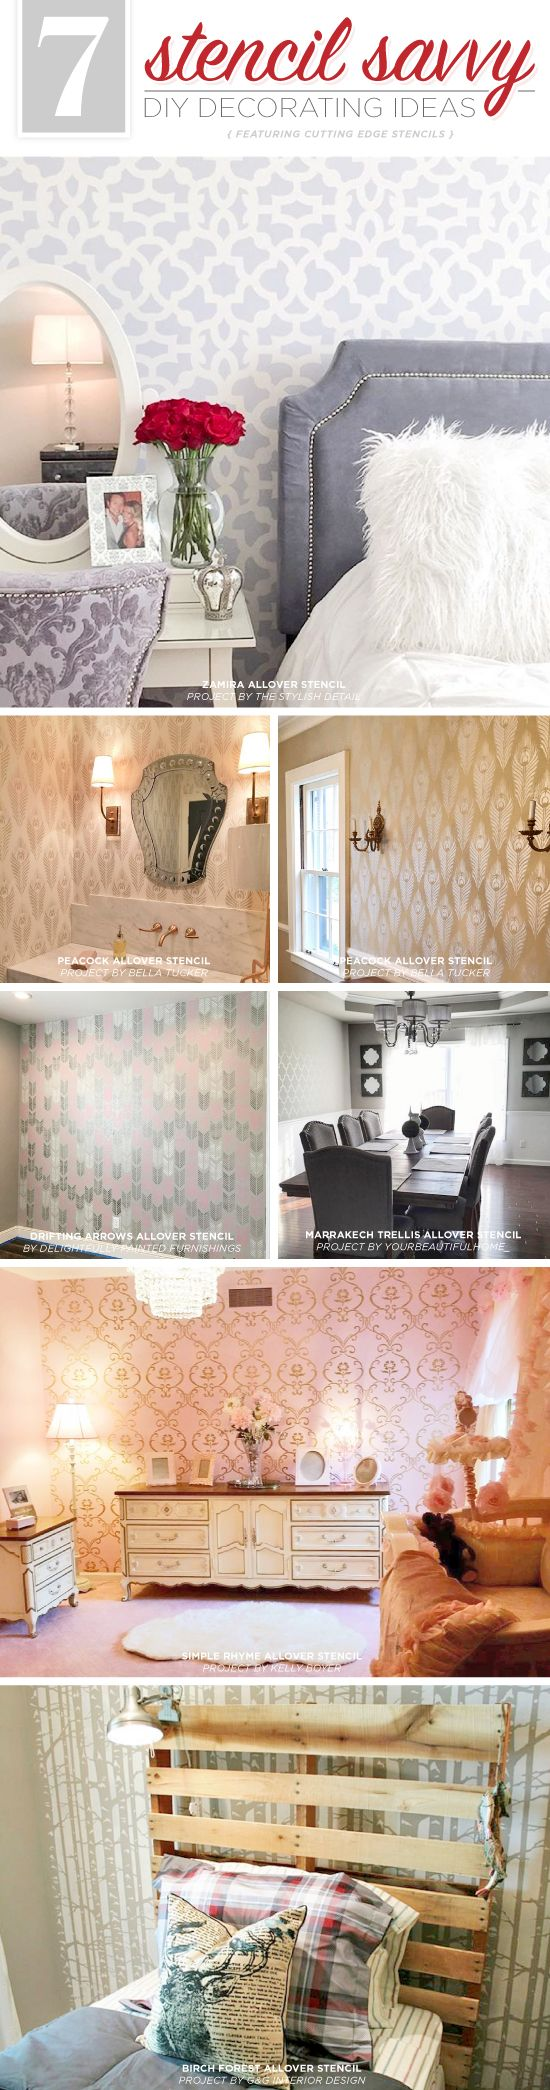 34 best beads allover stencil images on pinterest cutting edge 34 best beads allover stencil images on pinterest cutting edge stencils wall stencil patterns and wall stenciling amipublicfo Image collections